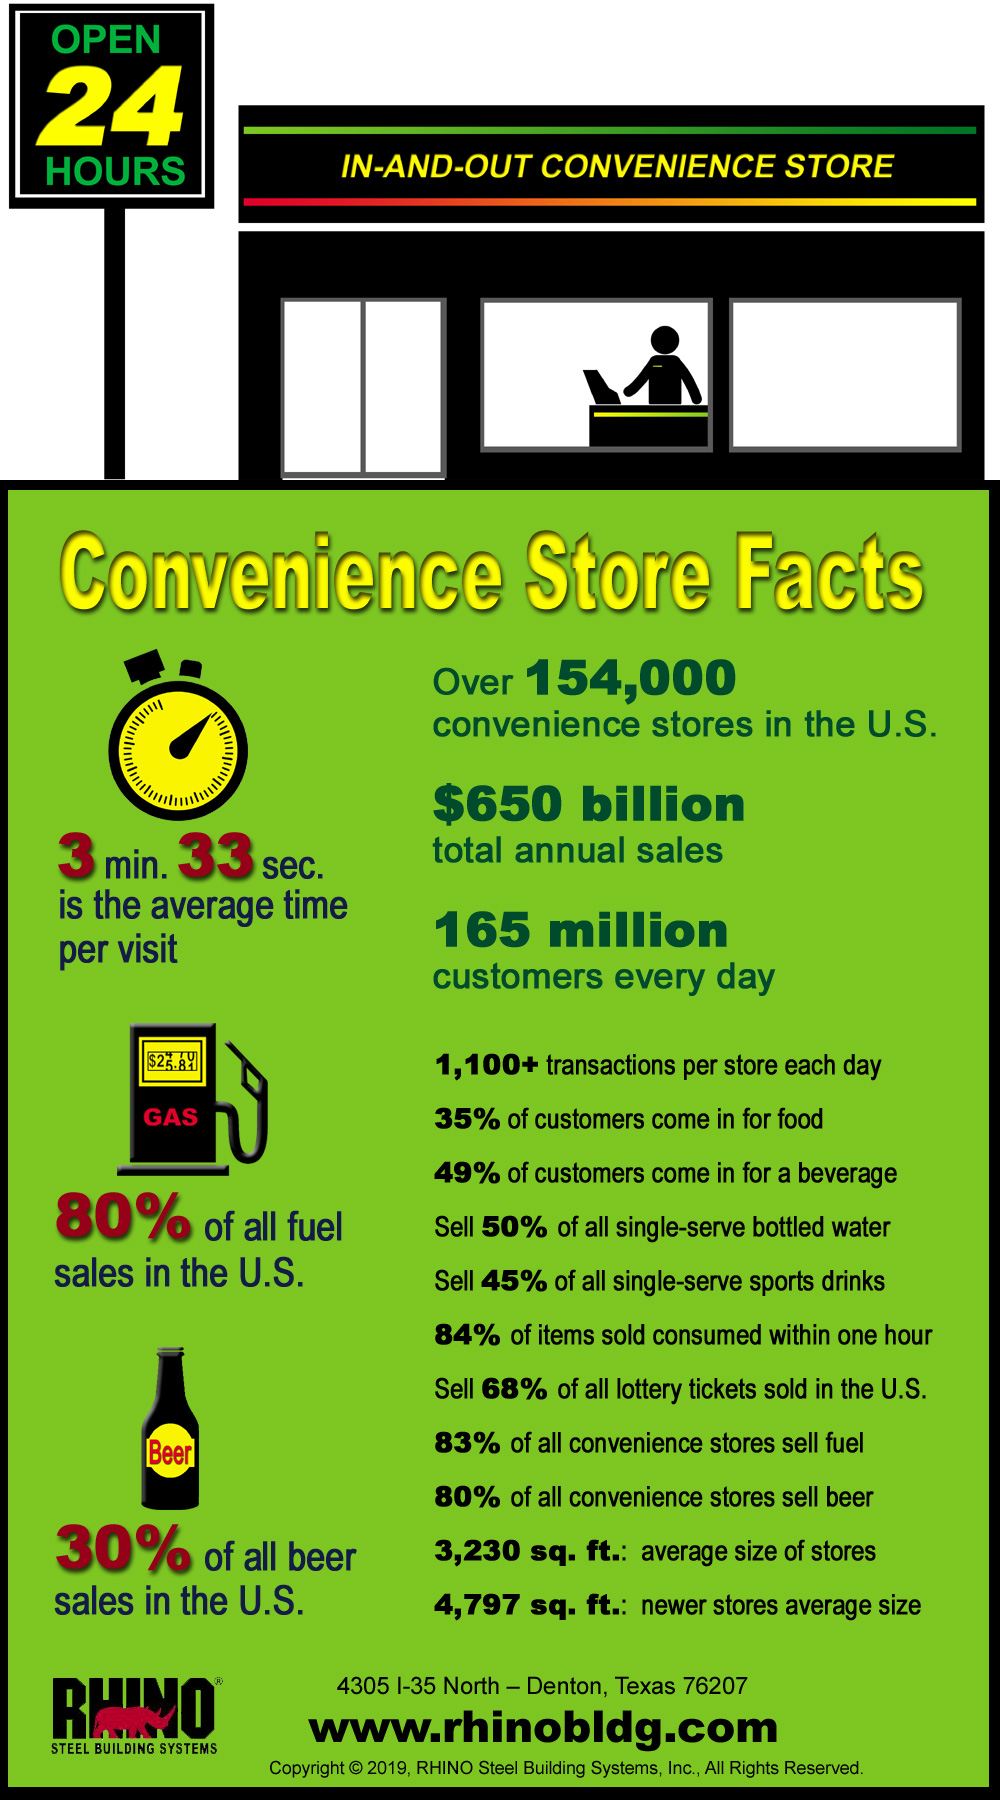 RHINO infographic offers latest statistics for convenience stores in the U.S.